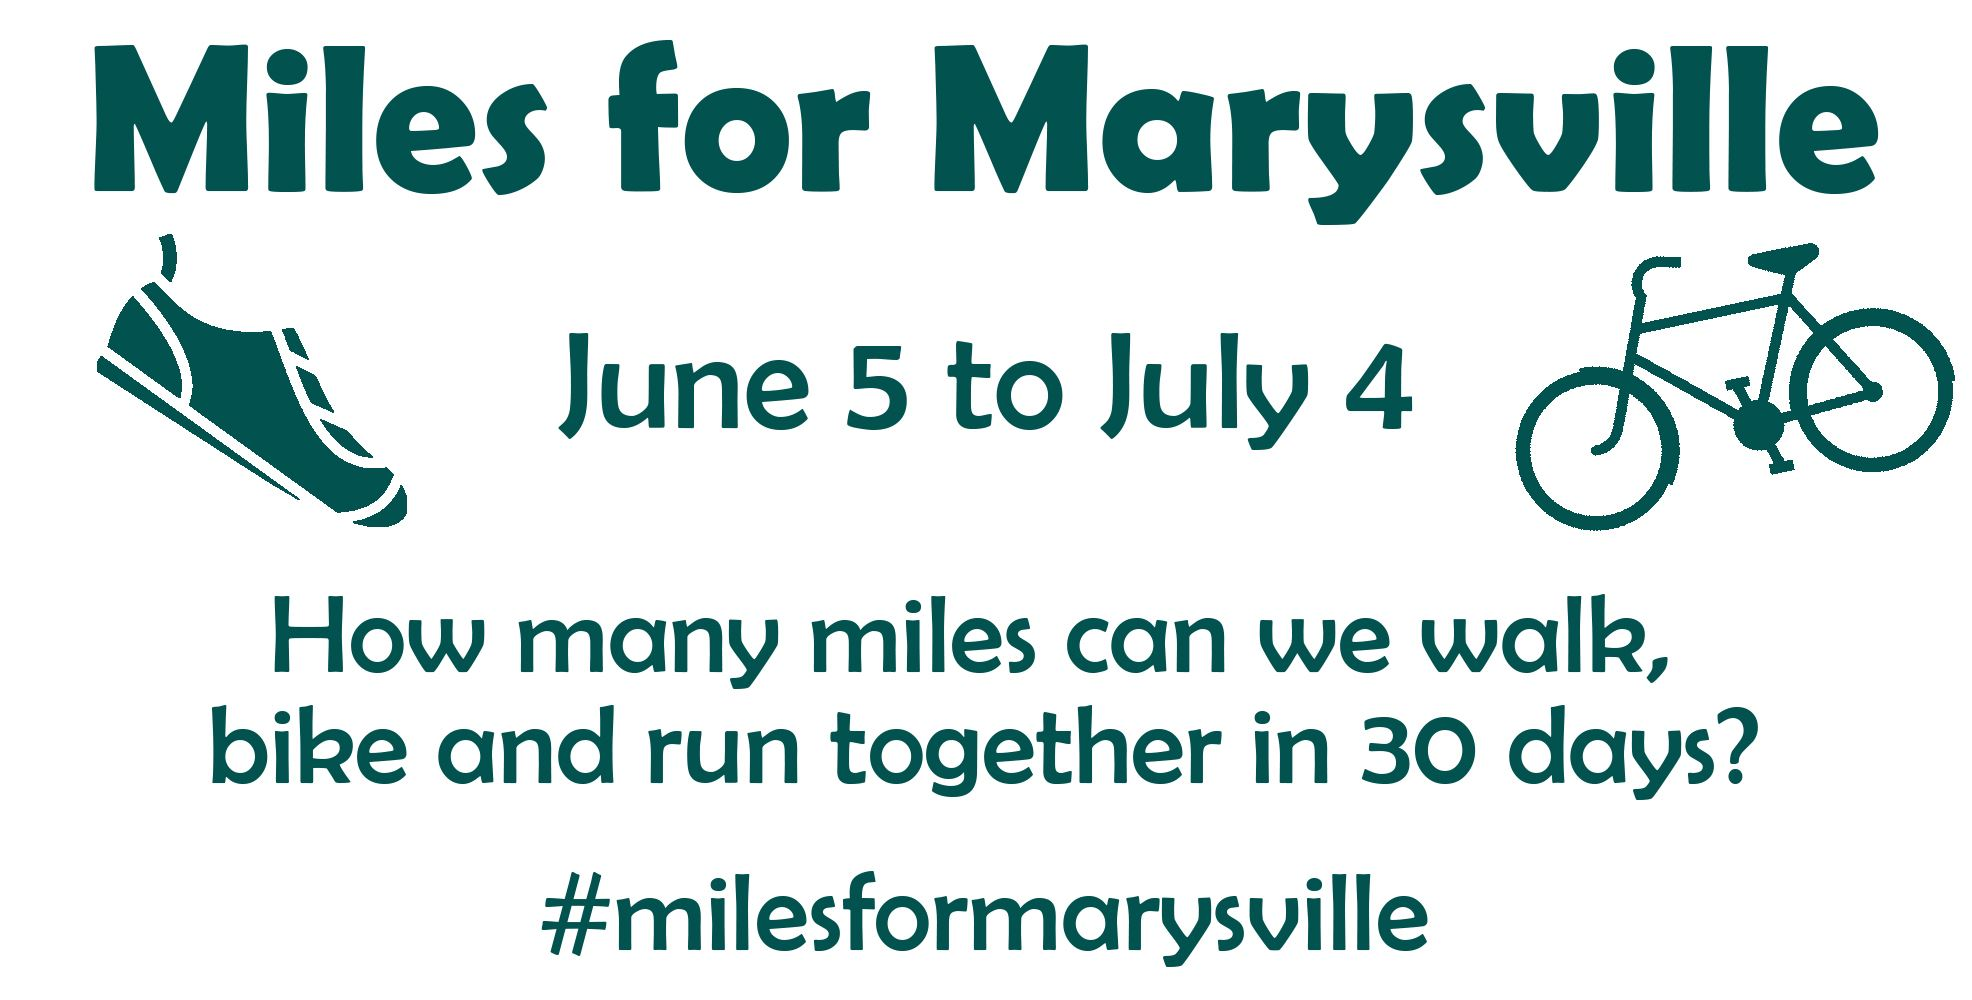 Miles for Marysville Tile